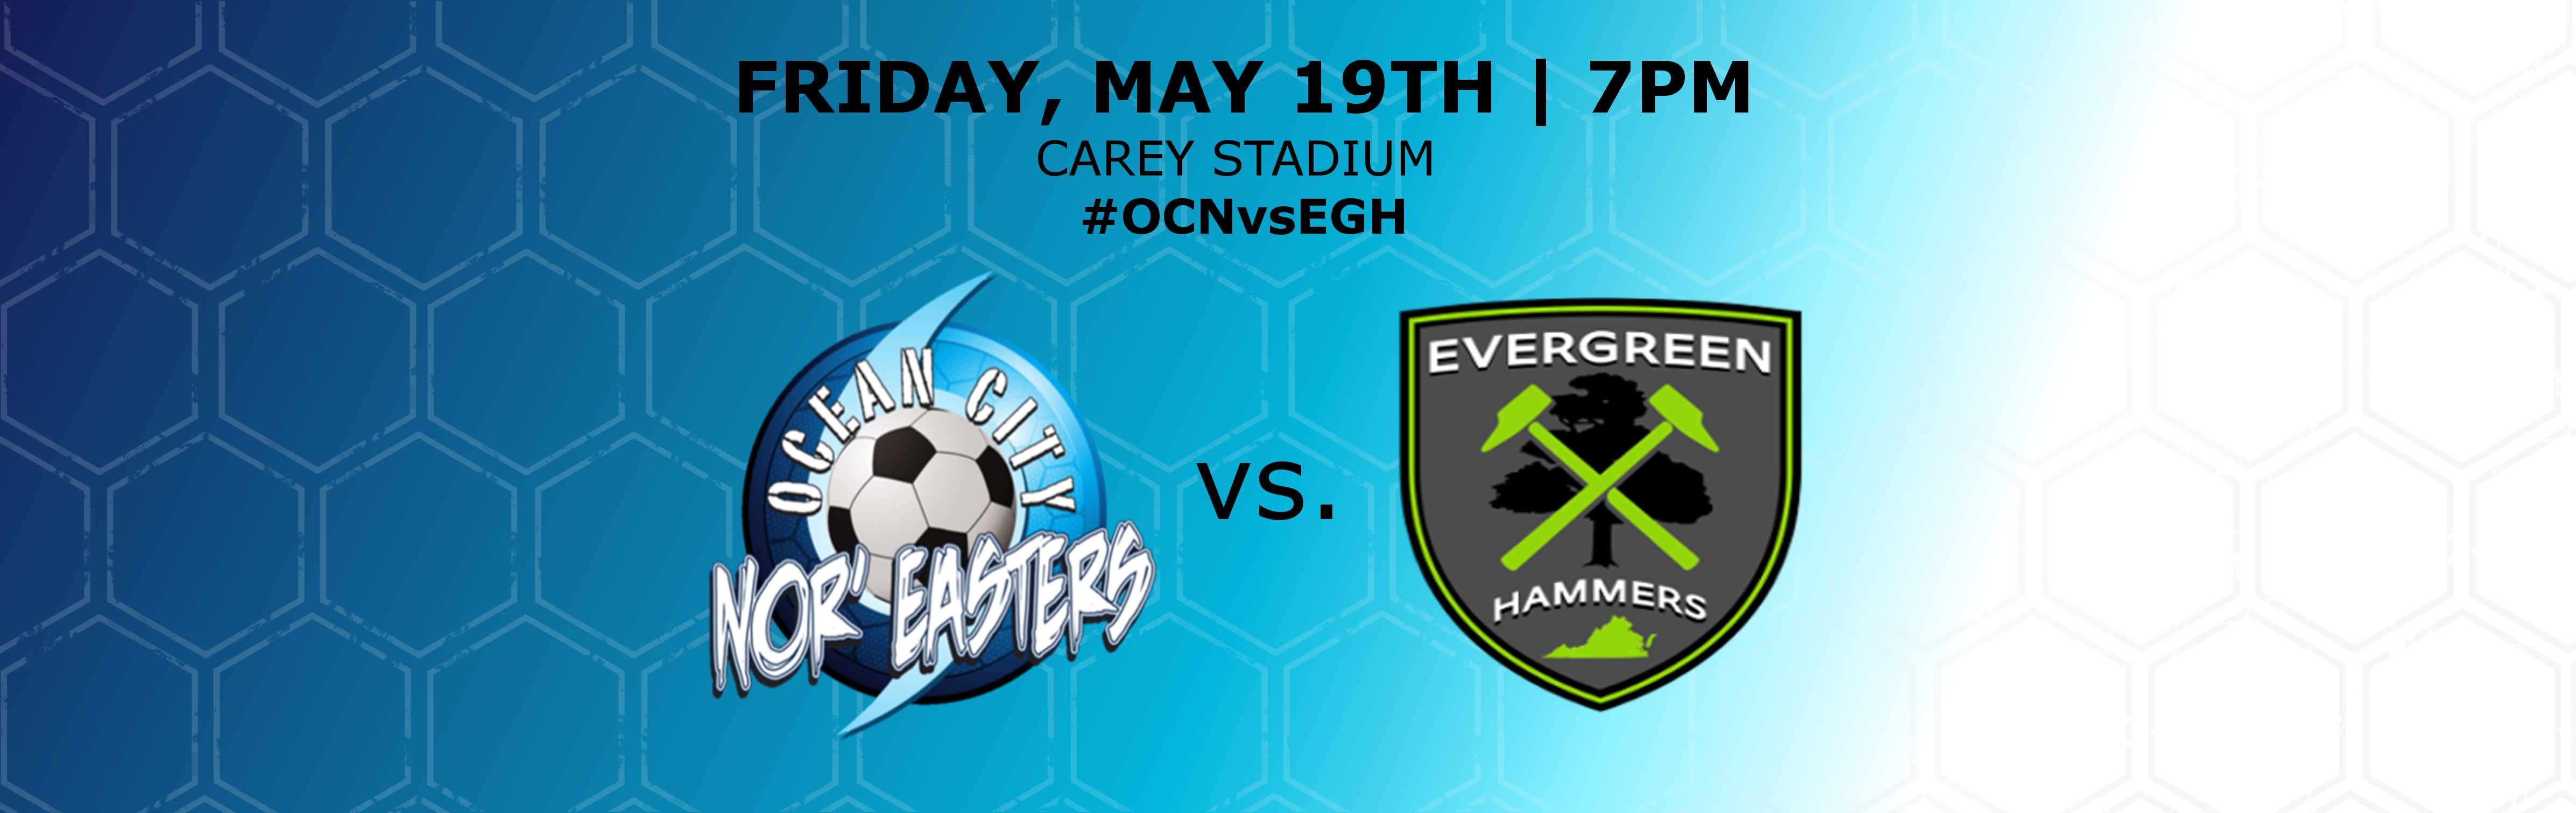 Nor'easters kick off 2017 PDL season with pair of home games this weekend